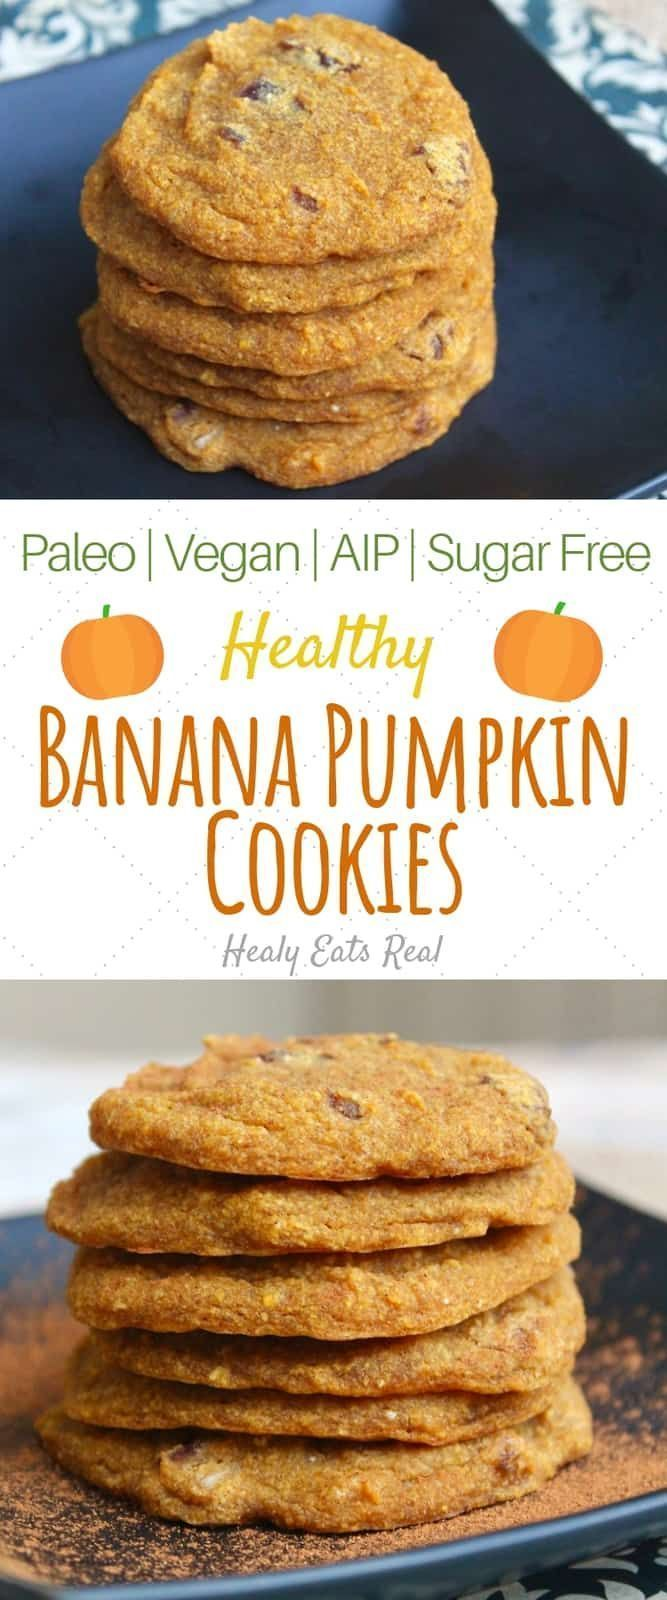 Healthy Banana Pumpkin Cookies AIP Paleo Vegan Sugar Free  Healthy Banana  diet diet plan wedding decor holz saal selber machen tisch vintage wedding decor wedding decor...